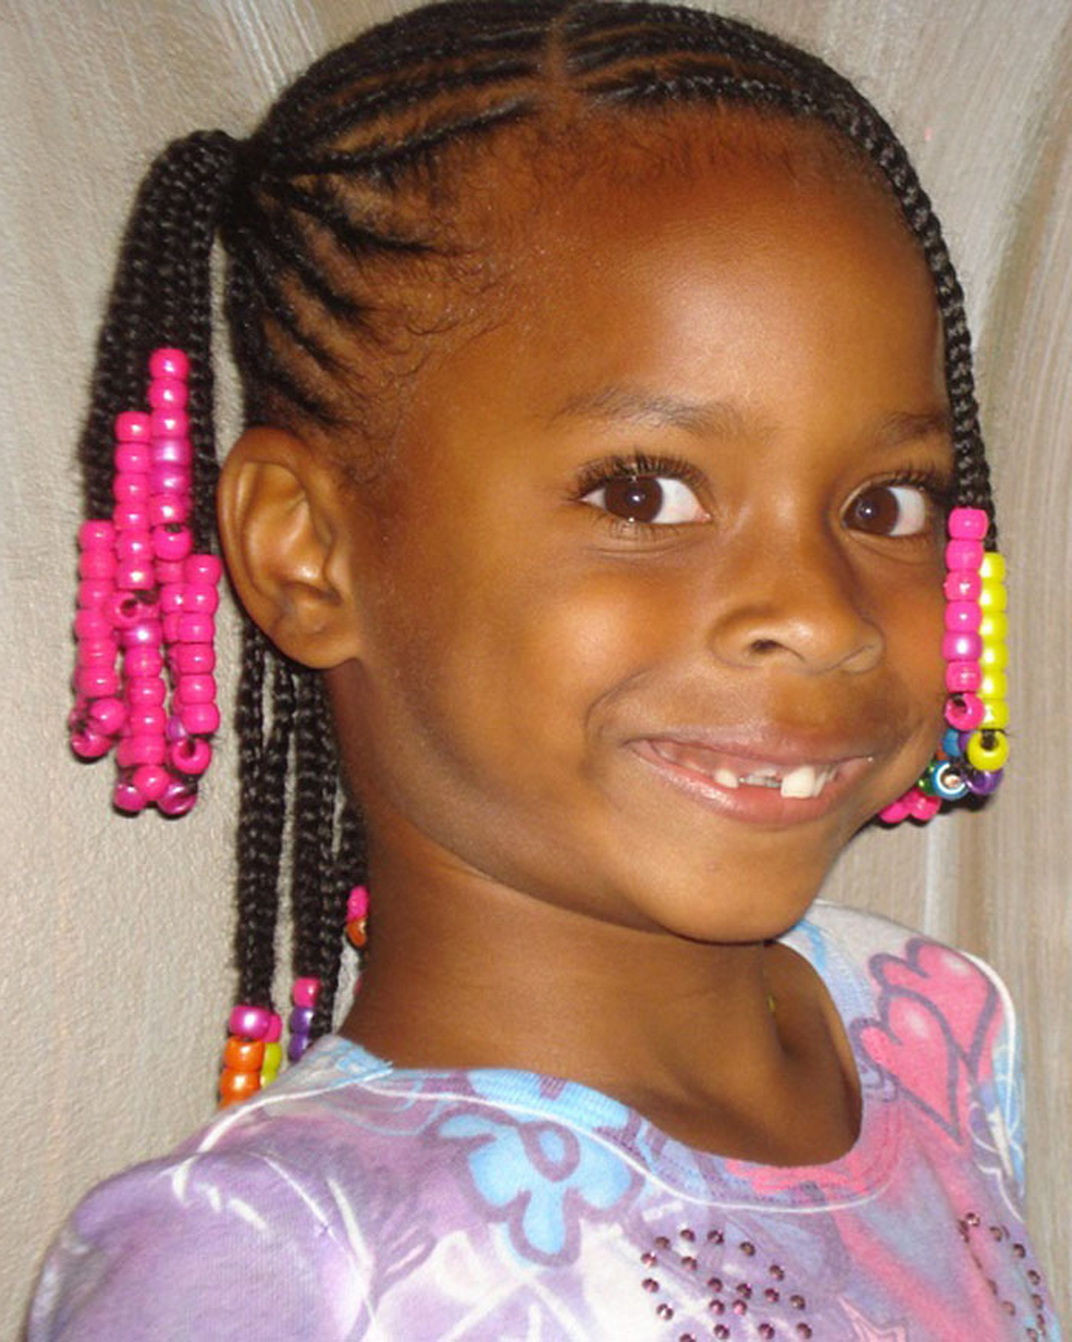 Best ideas about Cute Black Girl Hairstyles . Save or Pin Black girl hairstyles with curls Hairstyle for women & man Now.